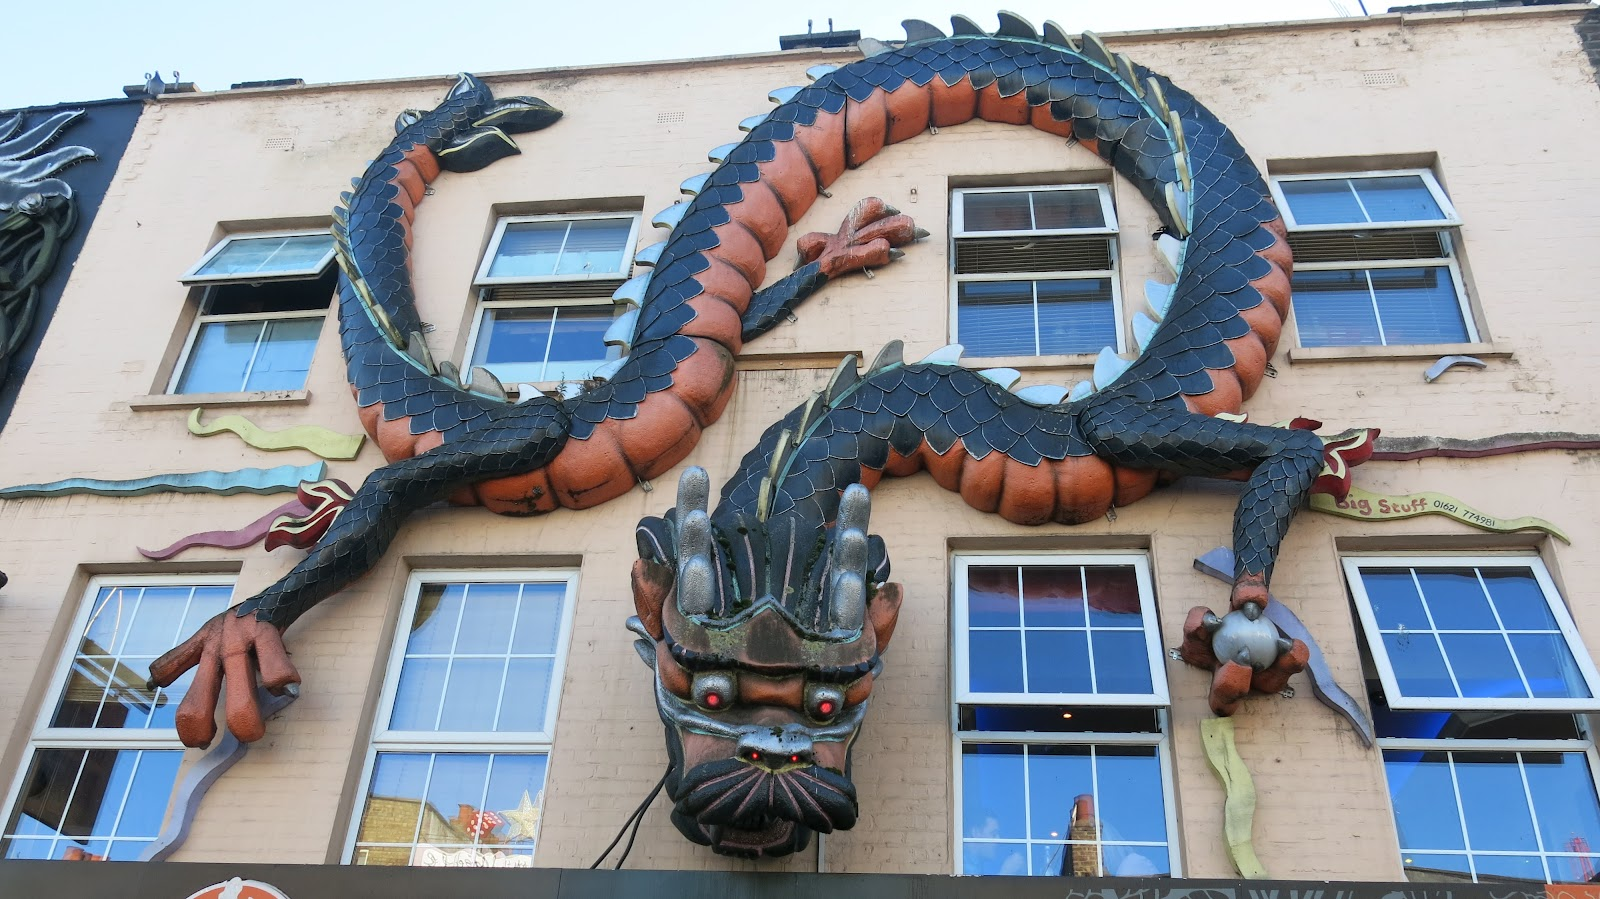 The dragon climbing the building at Camden Market